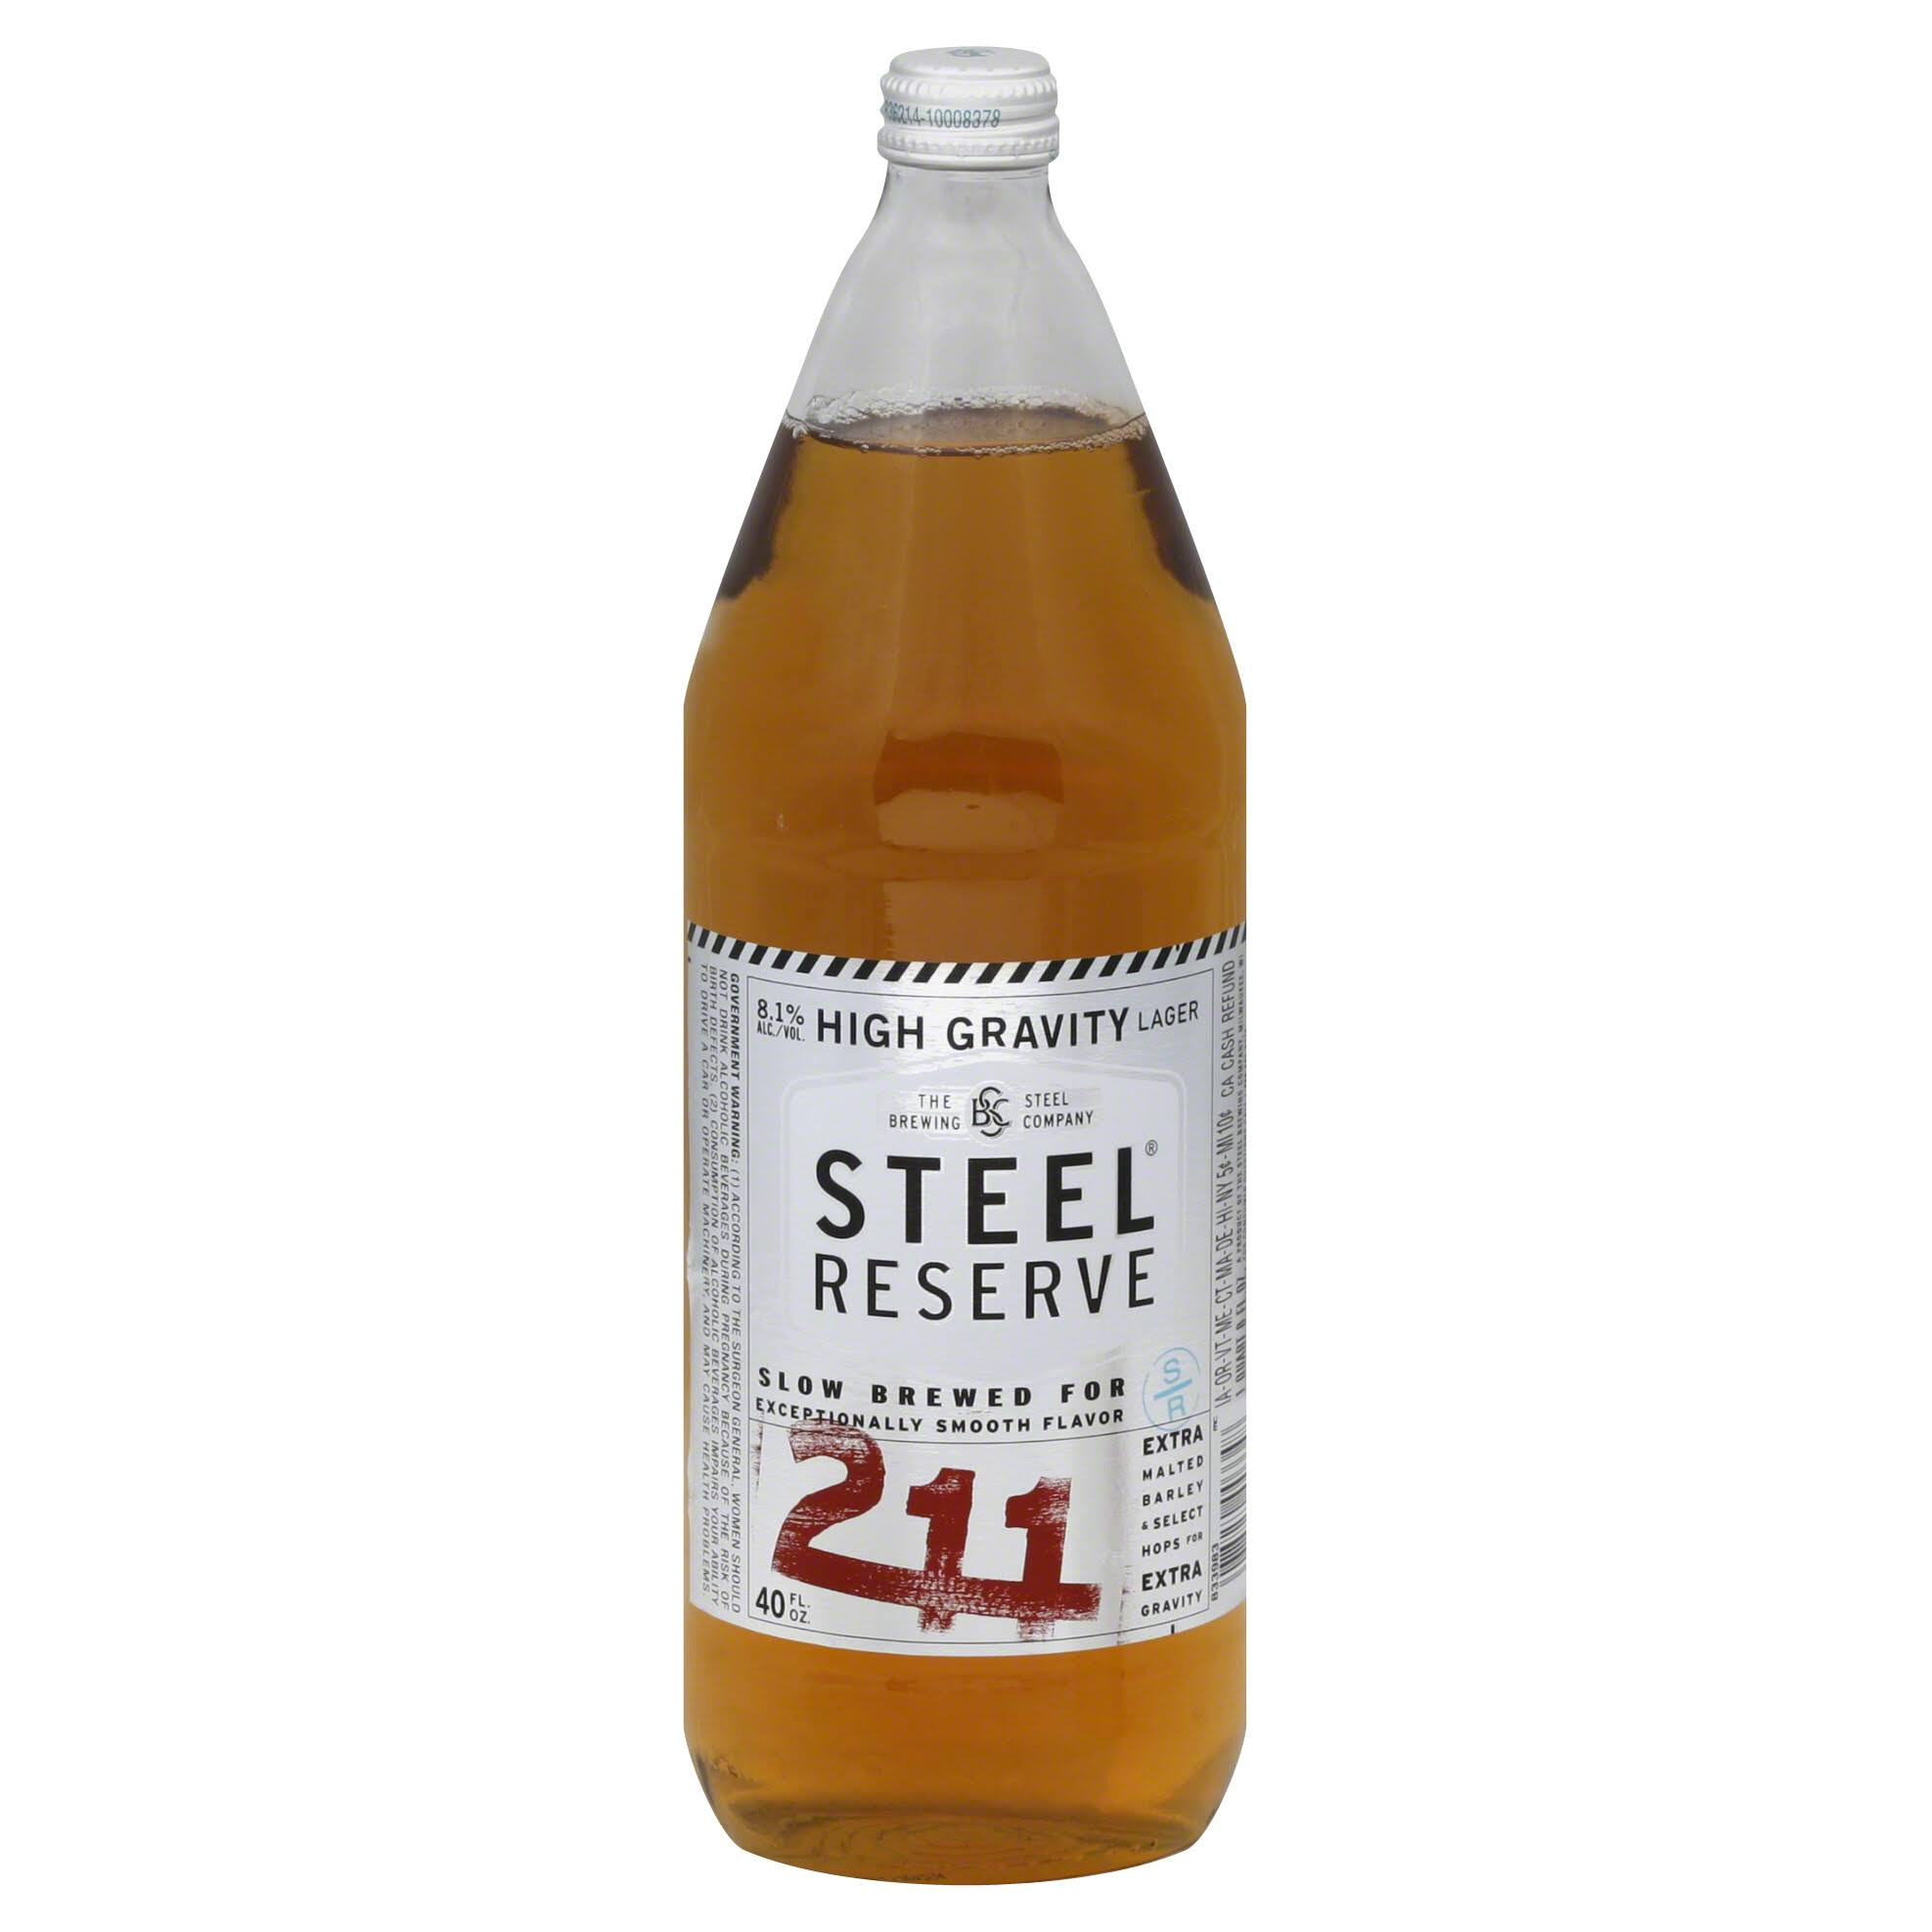 Steel Reserve 211 High Gravity Lager - 40oz